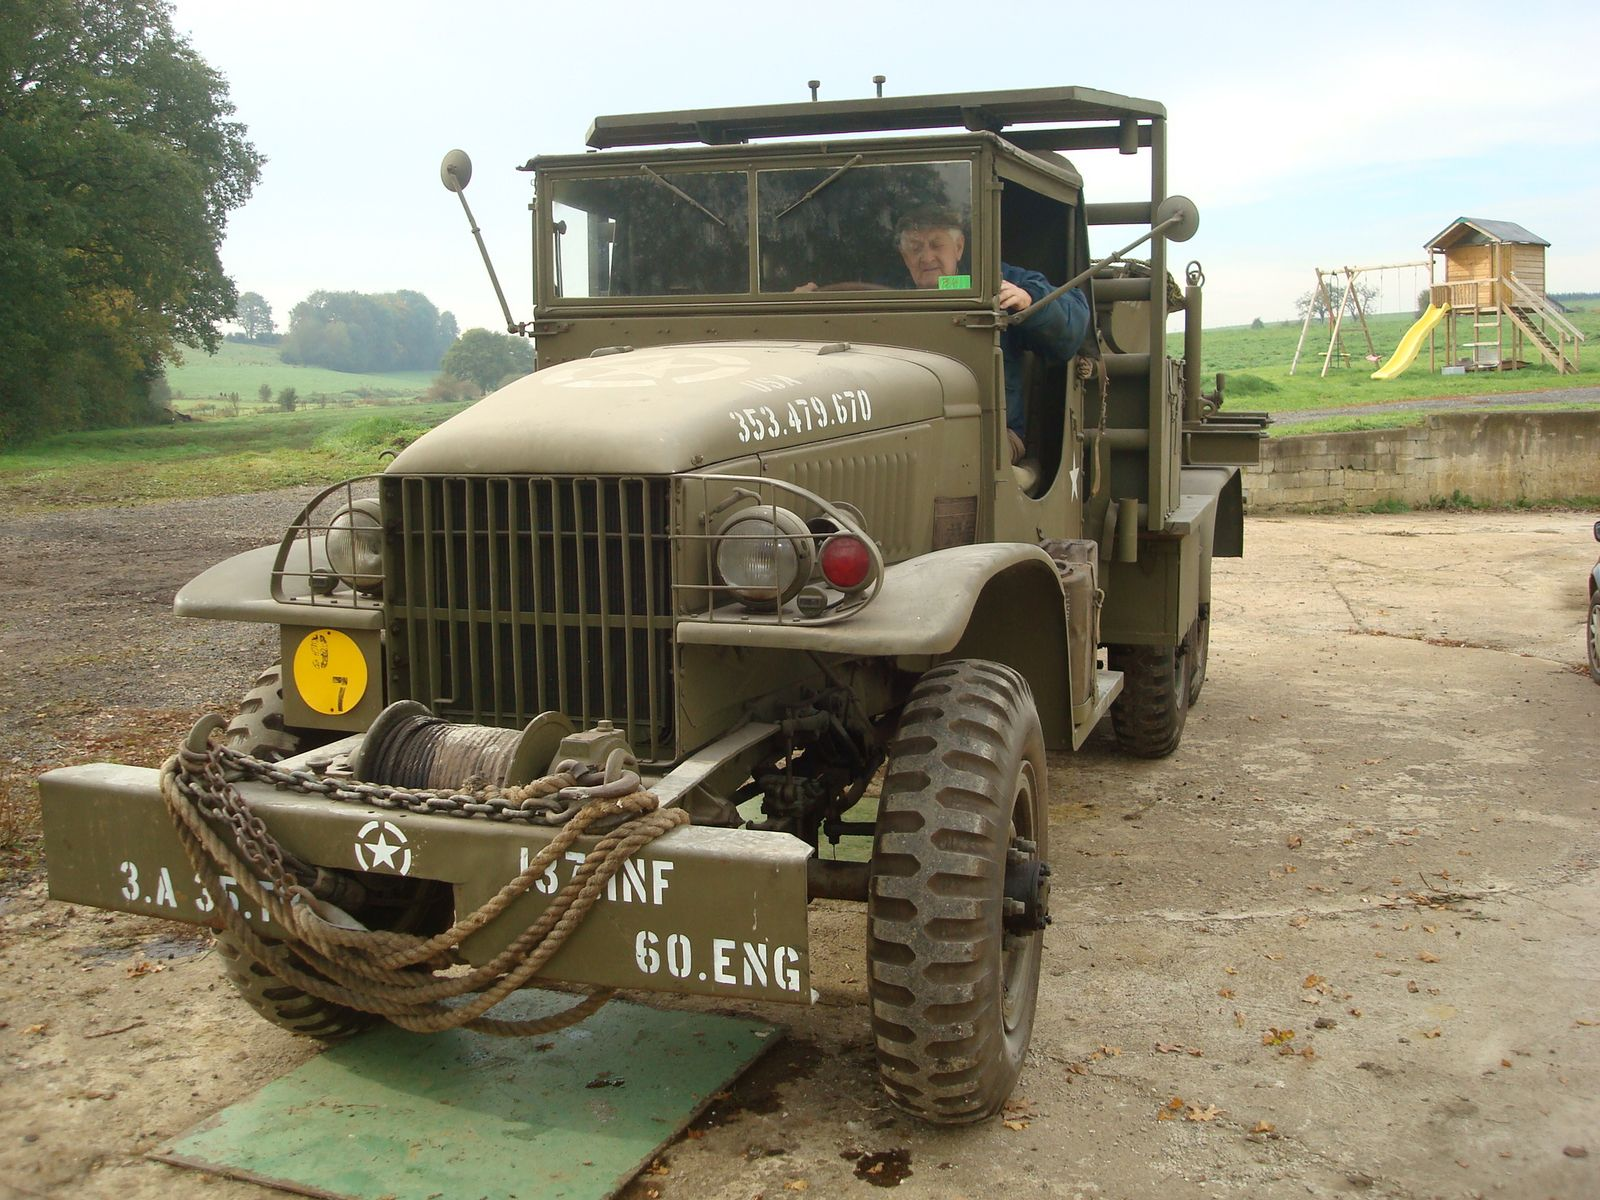 WW2 Trucks for Sale http://panzermaus.blogspot.com/2011/07/gmc-bolster-truck-for-sale.html